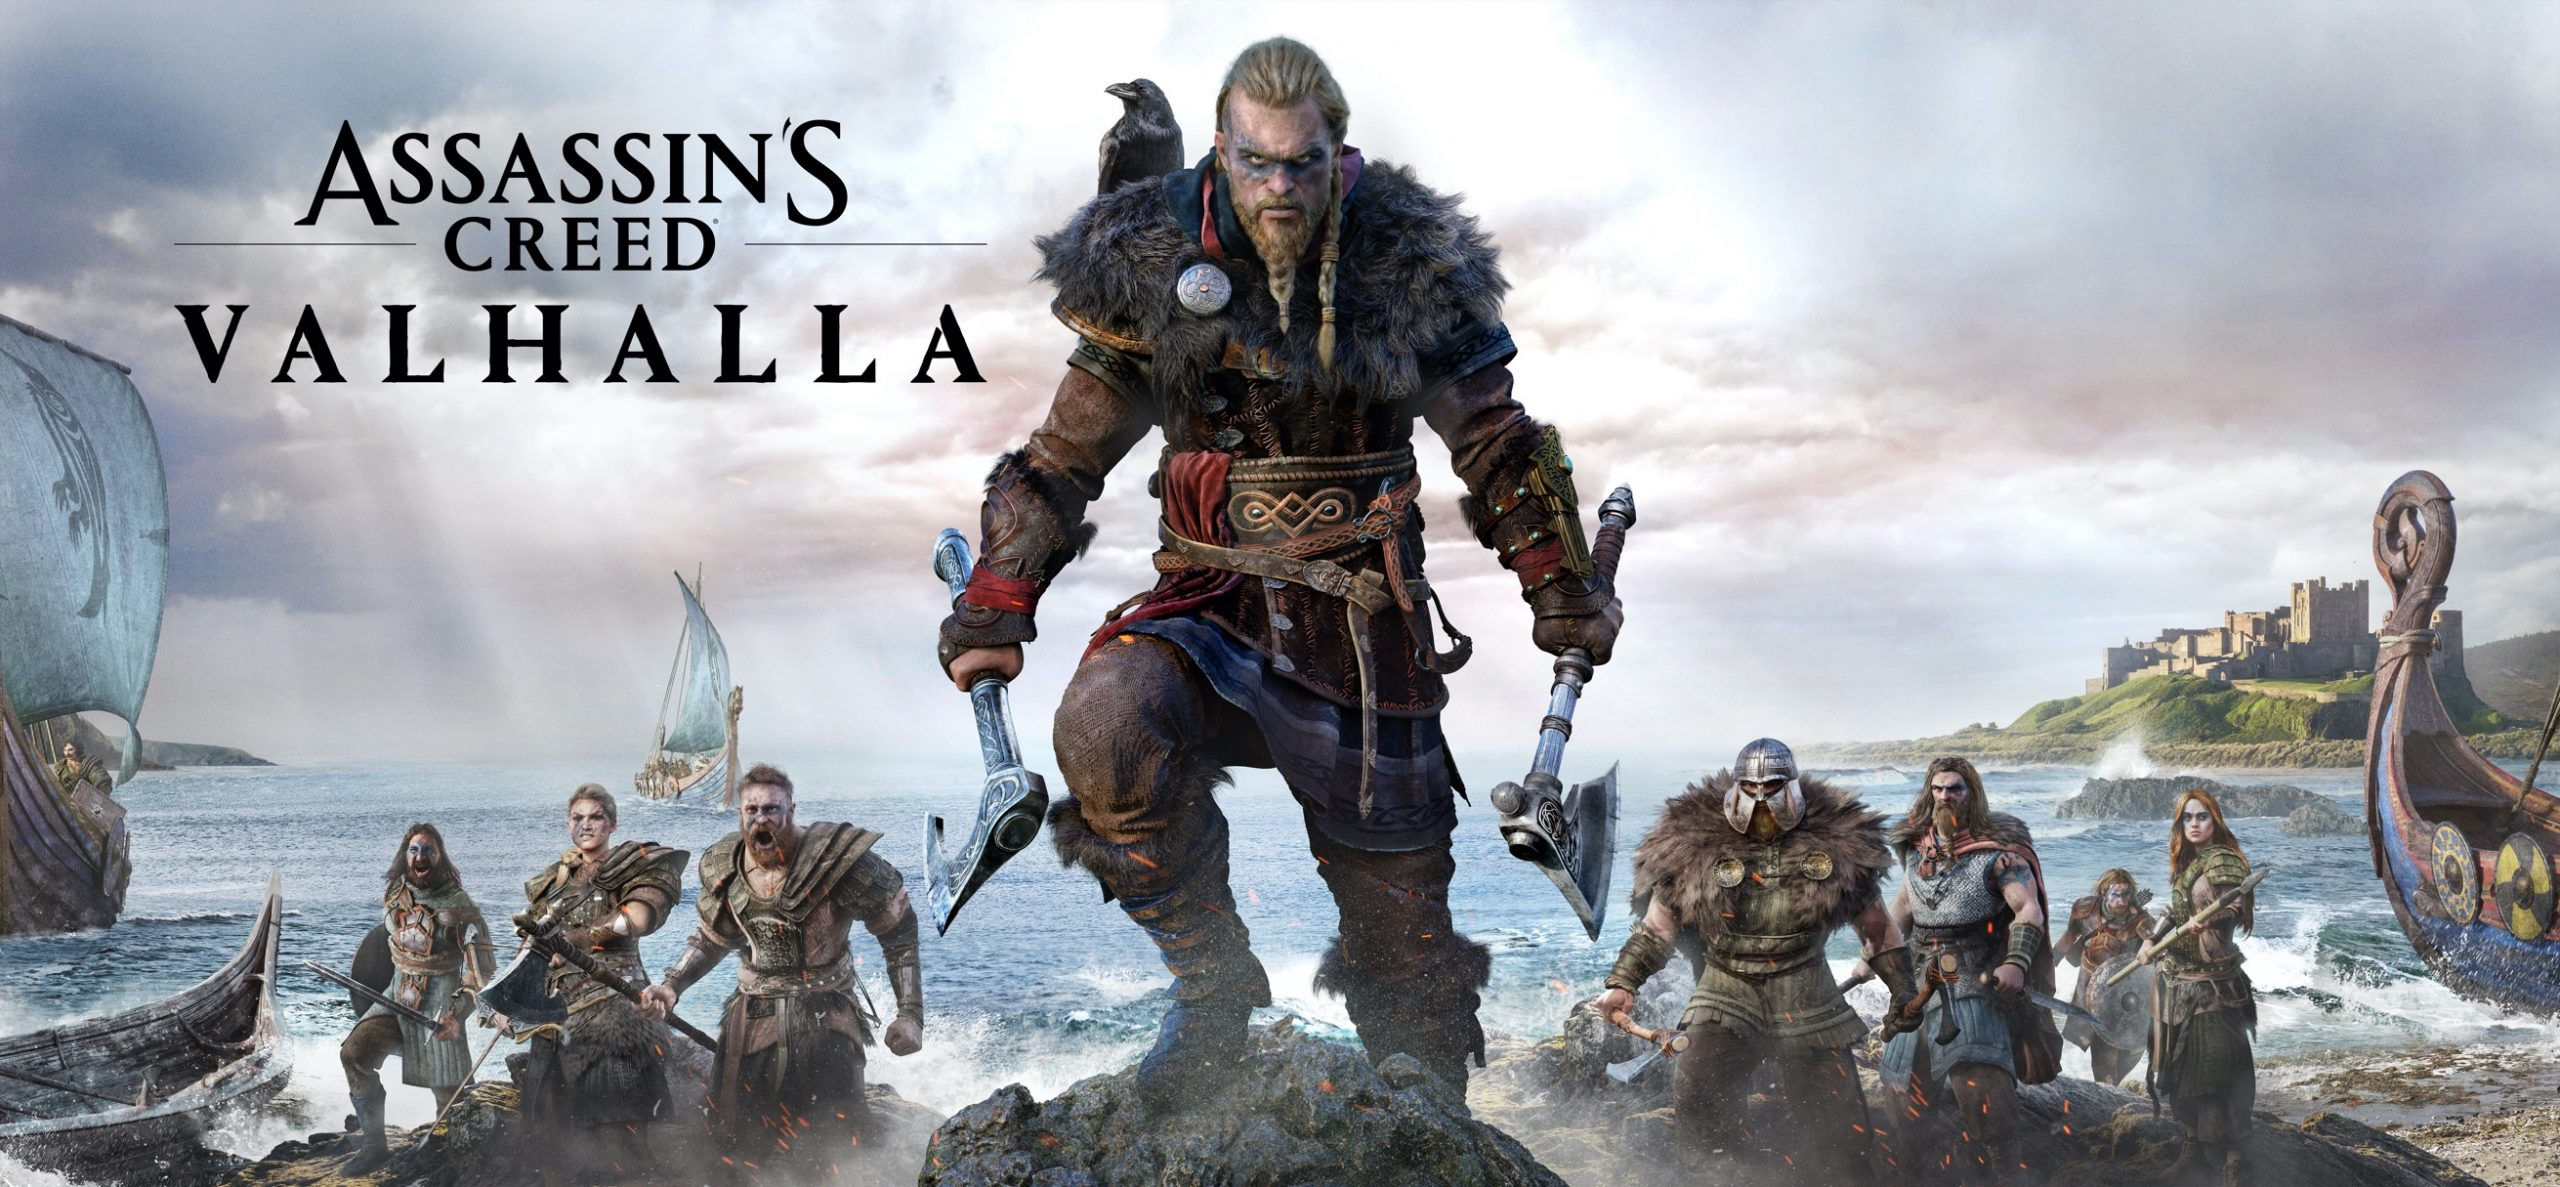 Promotion for Assassin's Creed Valhalla featuring Meivor climbing a rock with the beach, some men, and longboats behind him.